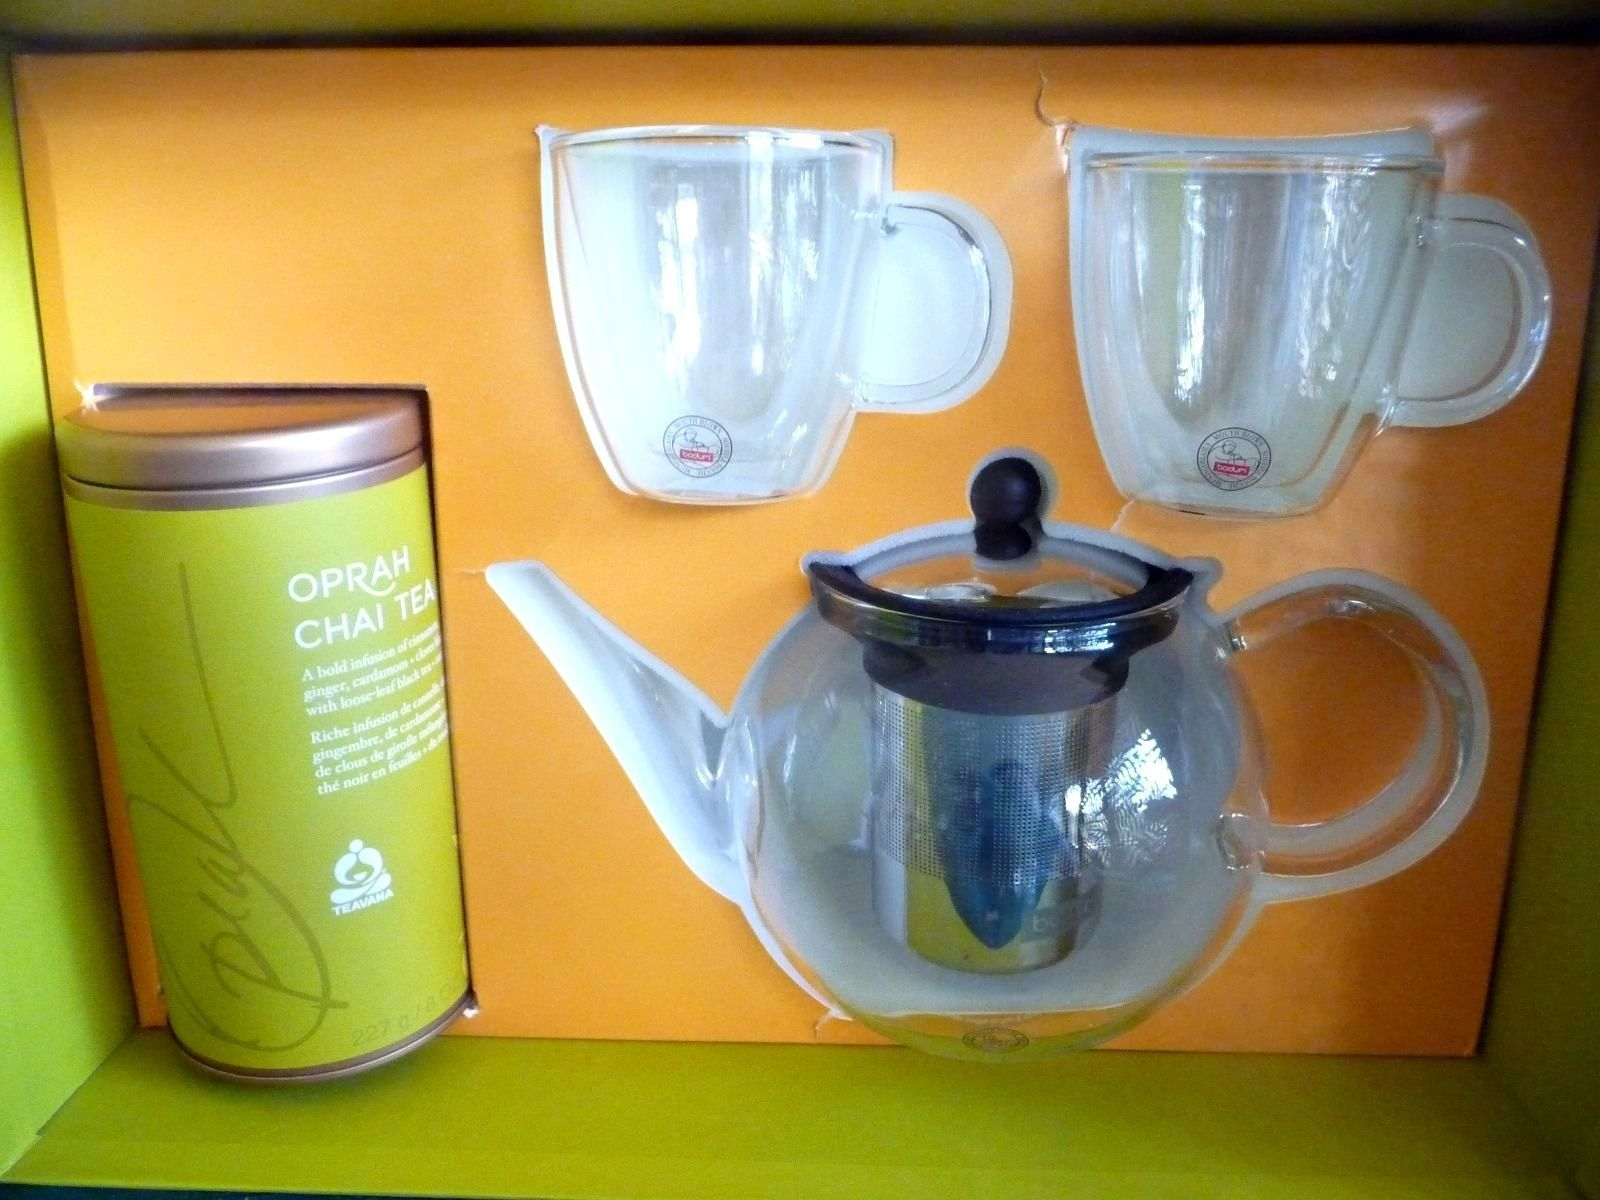 Starbucks teavana oprah chai tea infuse inspiration set bodum mugs tea pot starbucks - Teavana glass teapot ...